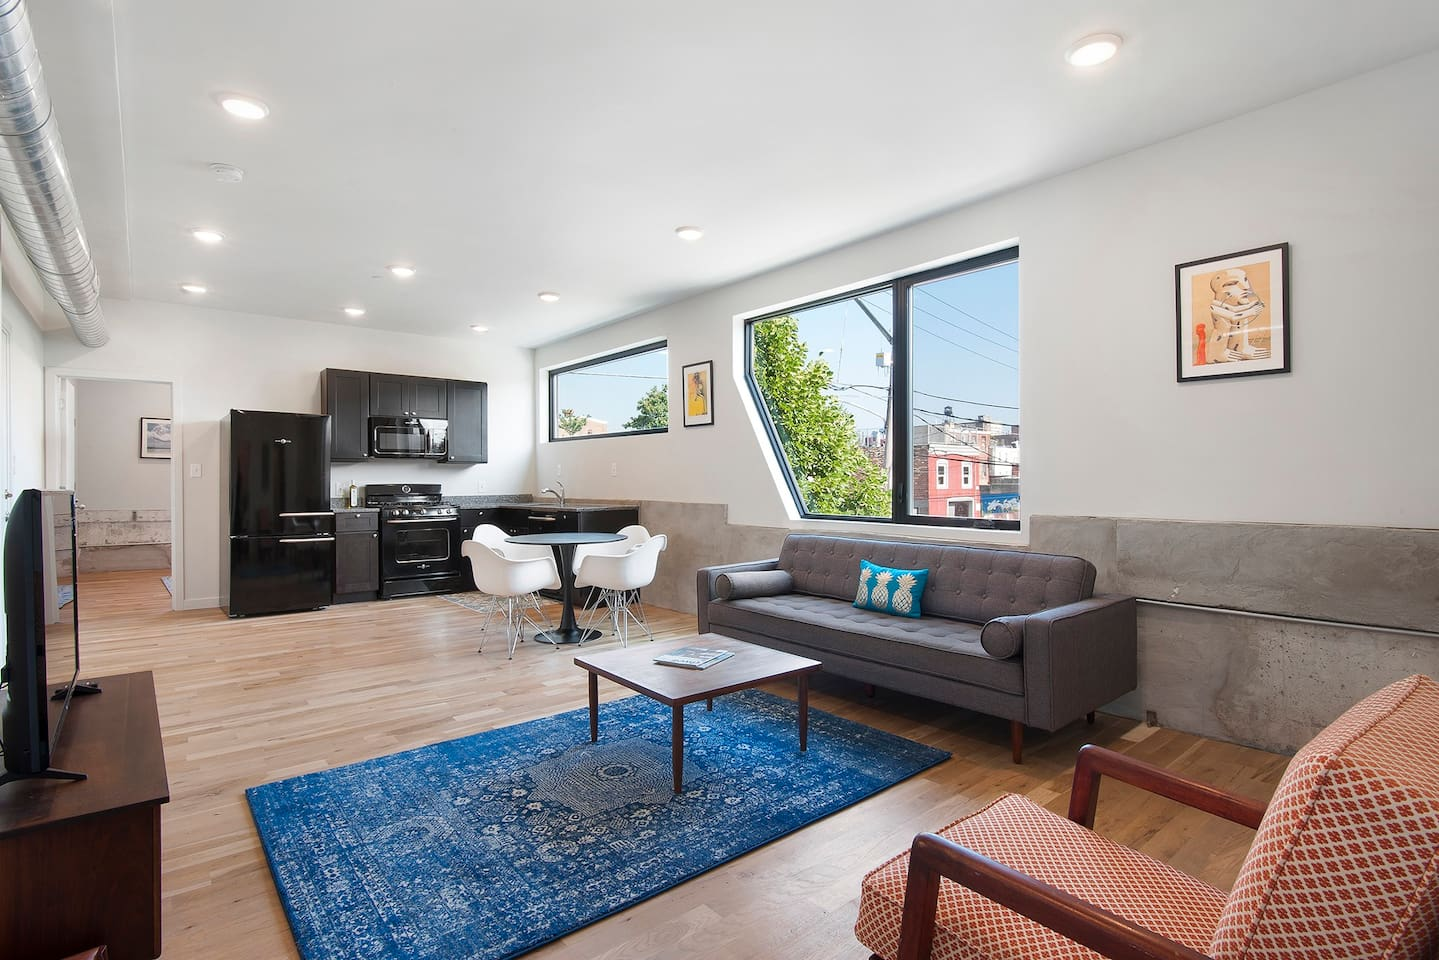 Welcome to your spacious apartment, location, amenities, style, and privacy in the city